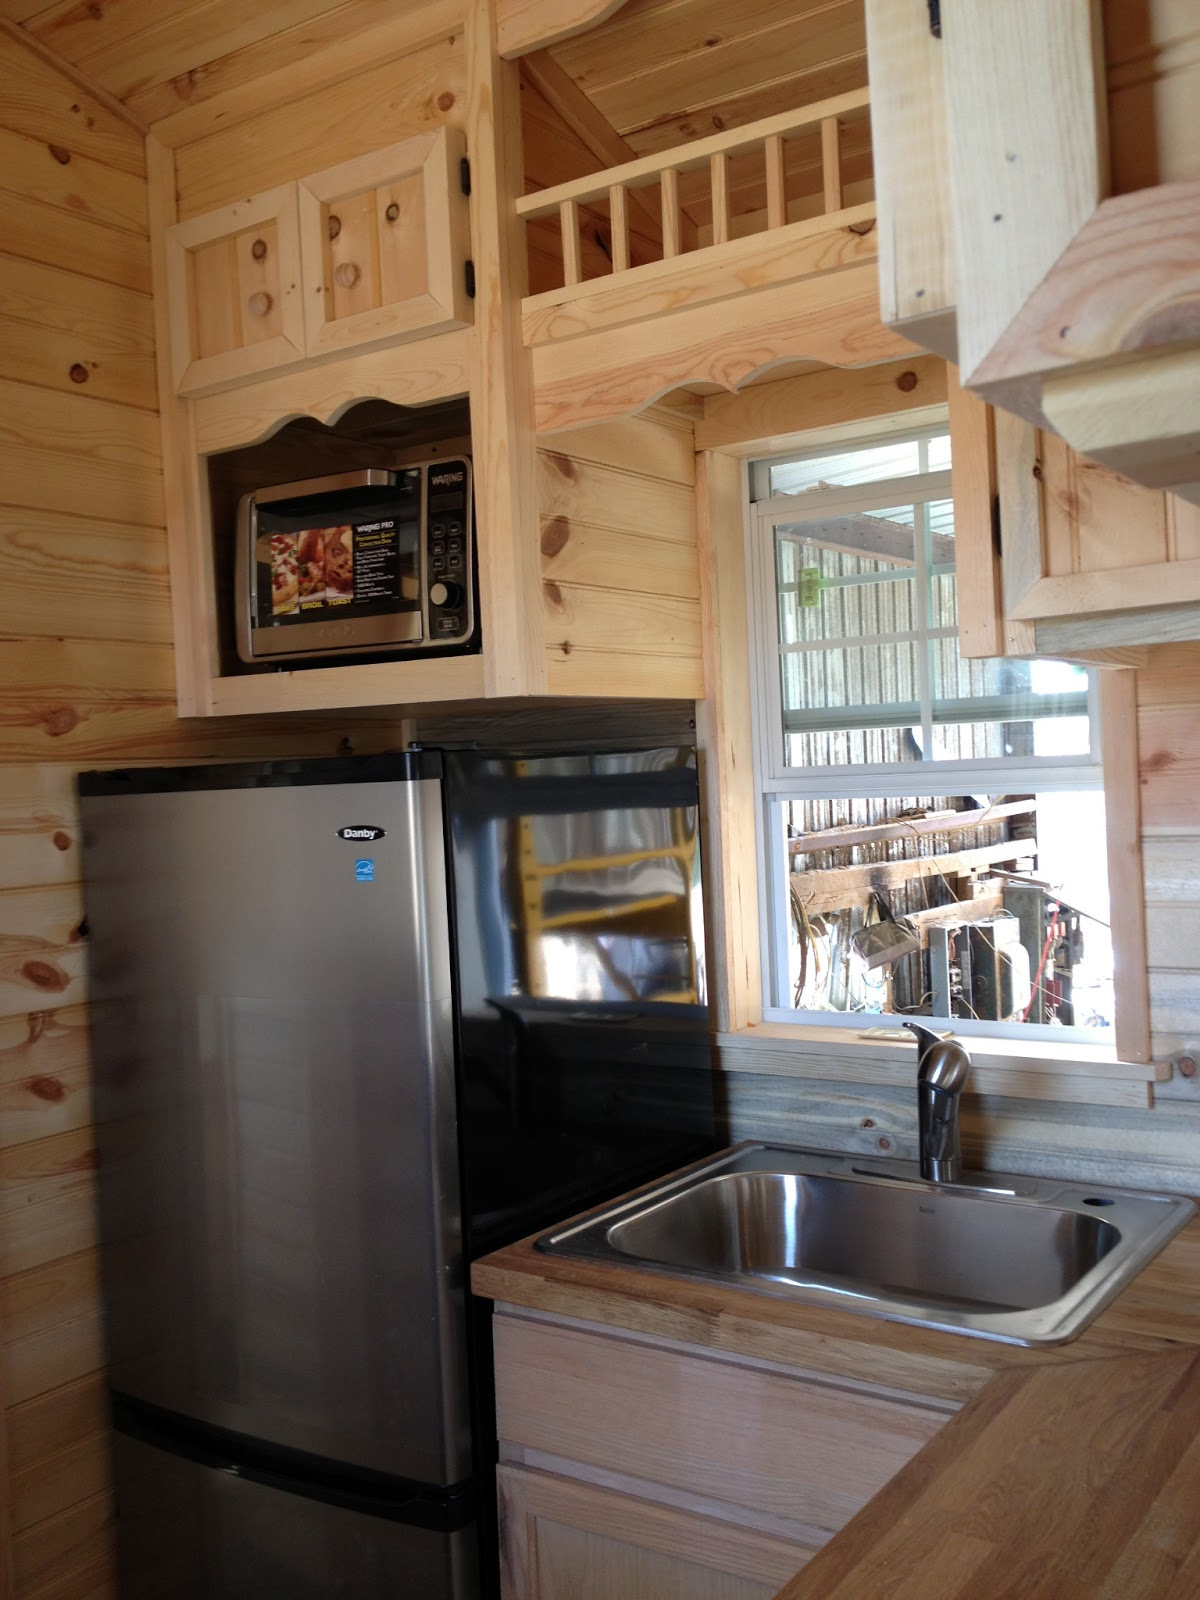 Washer And Dryer In Kitchen Tiny House Washer Dryer Tiny House Washer Dryer With Amazing Tiny